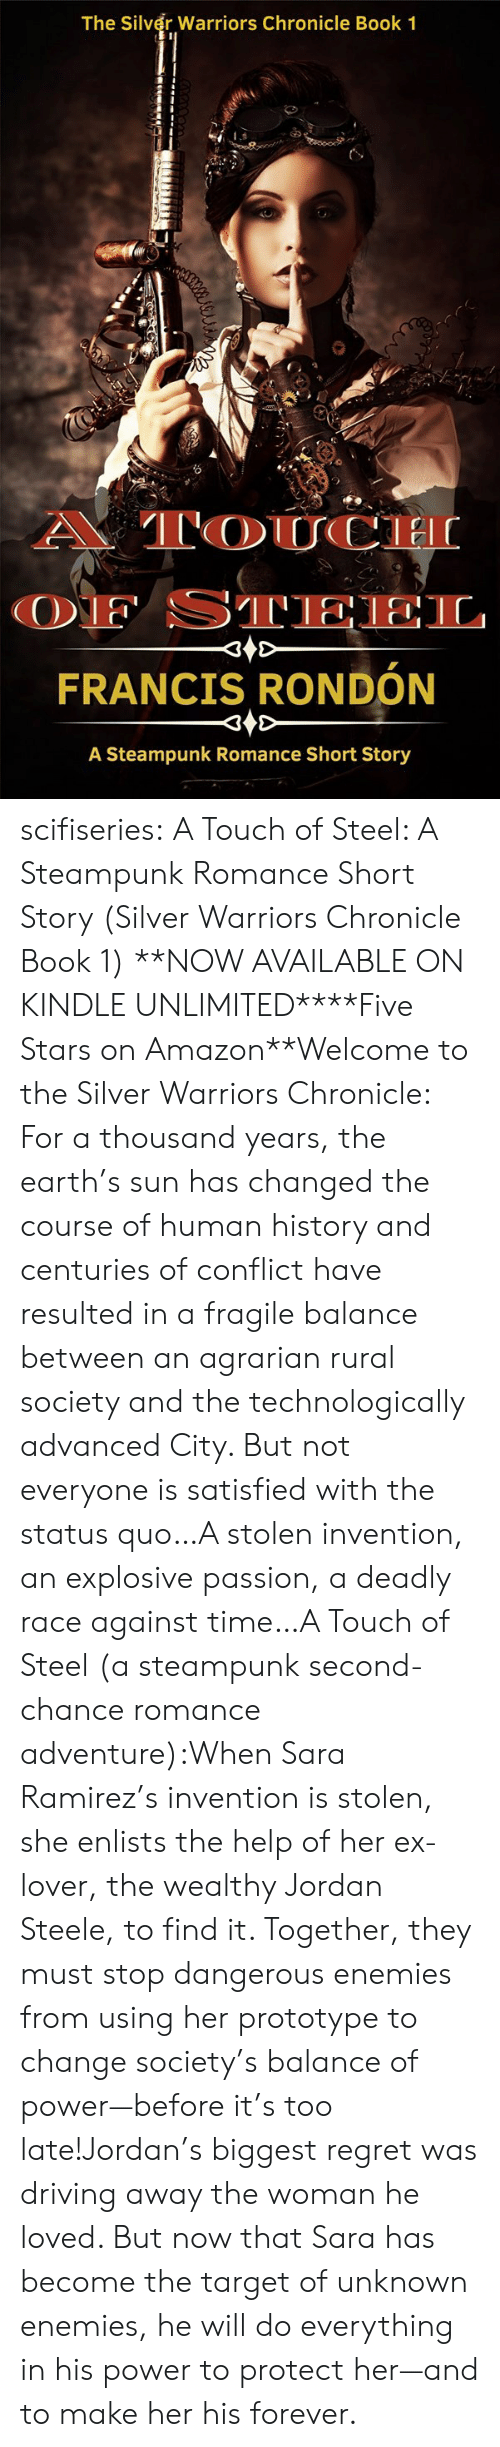 balance: The Silver Warriors Chronicle Book 1  A TOUCH  OF STEEL  FRANCIS RONDÓN  A Steampunk Romance Short Story scifiseries:   A Touch of Steel: A Steampunk Romance Short Story (Silver Warriors Chronicle Book 1)   **NOW AVAILABLE ON KINDLE UNLIMITED****Five Stars on Amazon**Welcome to the Silver Warriors Chronicle: For a thousand years, the earth's sun has changed the course of human history and centuries of conflict have resulted in a fragile balance between an agrarian rural society and the technologically advanced City. But not everyone is satisfied with the status quo…A stolen invention, an explosive passion, a deadly race against time…A Touch of Steel (a steampunk second-chance romance adventure):When Sara Ramirez's invention is stolen, she enlists the help of her ex-lover, the wealthy Jordan Steele, to find it. Together, they must stop dangerous enemies from using her prototype to change society's balance of power—before it's too late!Jordan's biggest regret was driving away the woman he loved. But now that Sara has become the target of unknown enemies, he will do everything in his power to protect her—and to make her his forever.